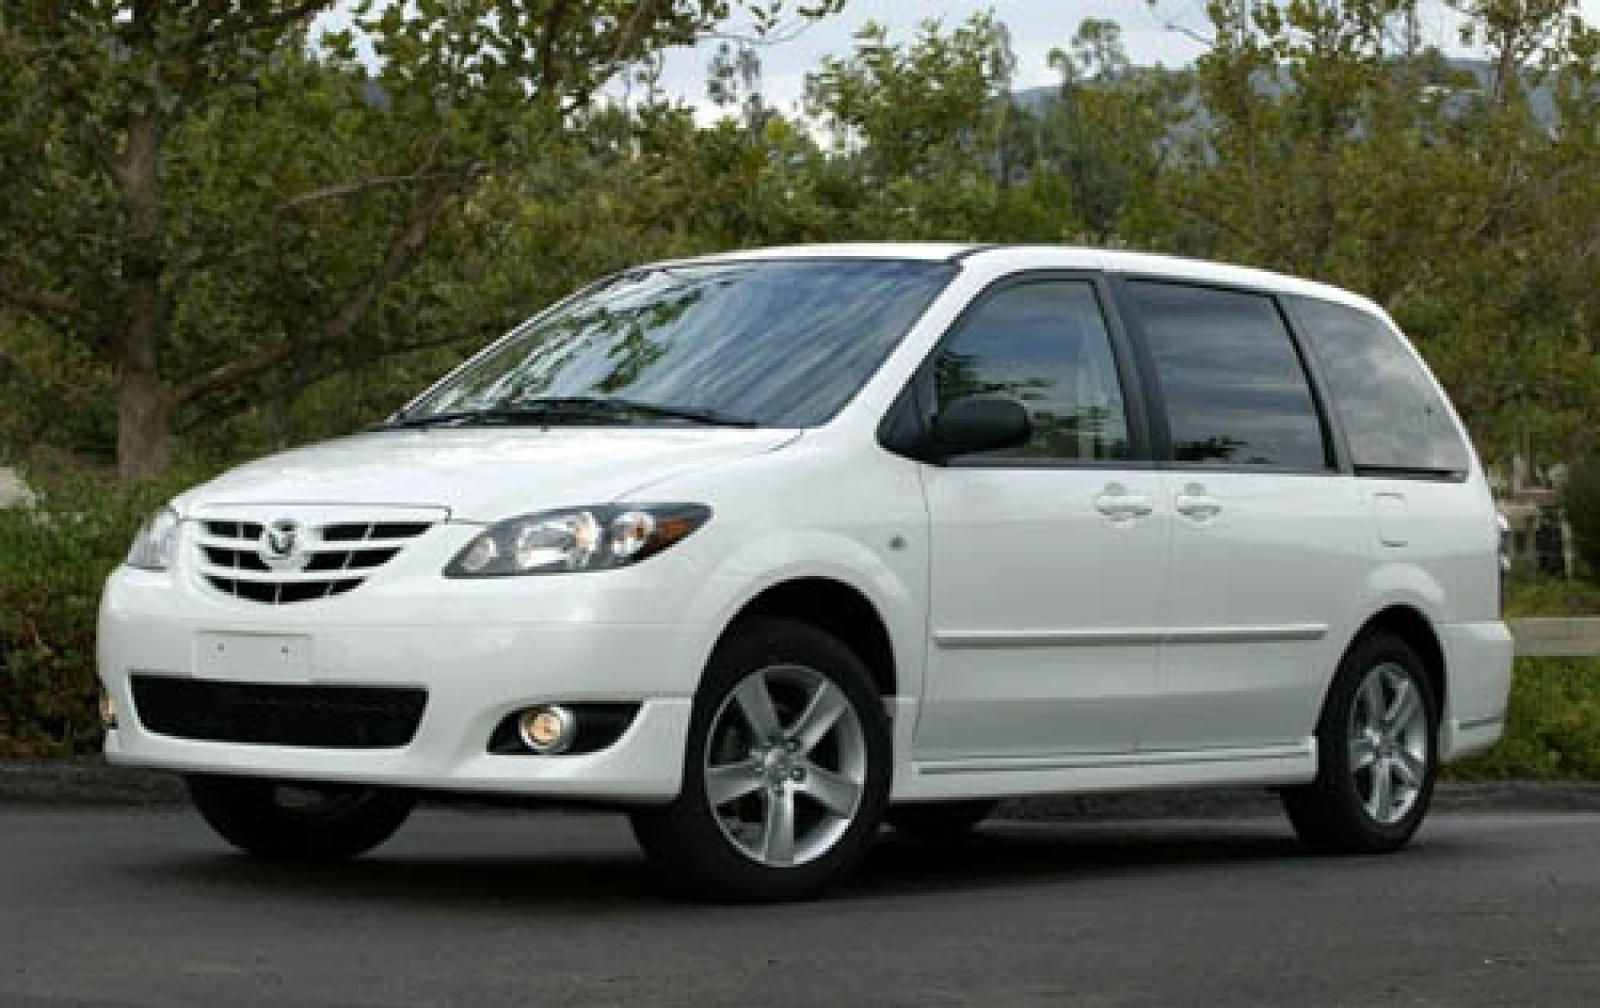 2005 mazda mpv information and photos zombiedrive. Black Bedroom Furniture Sets. Home Design Ideas